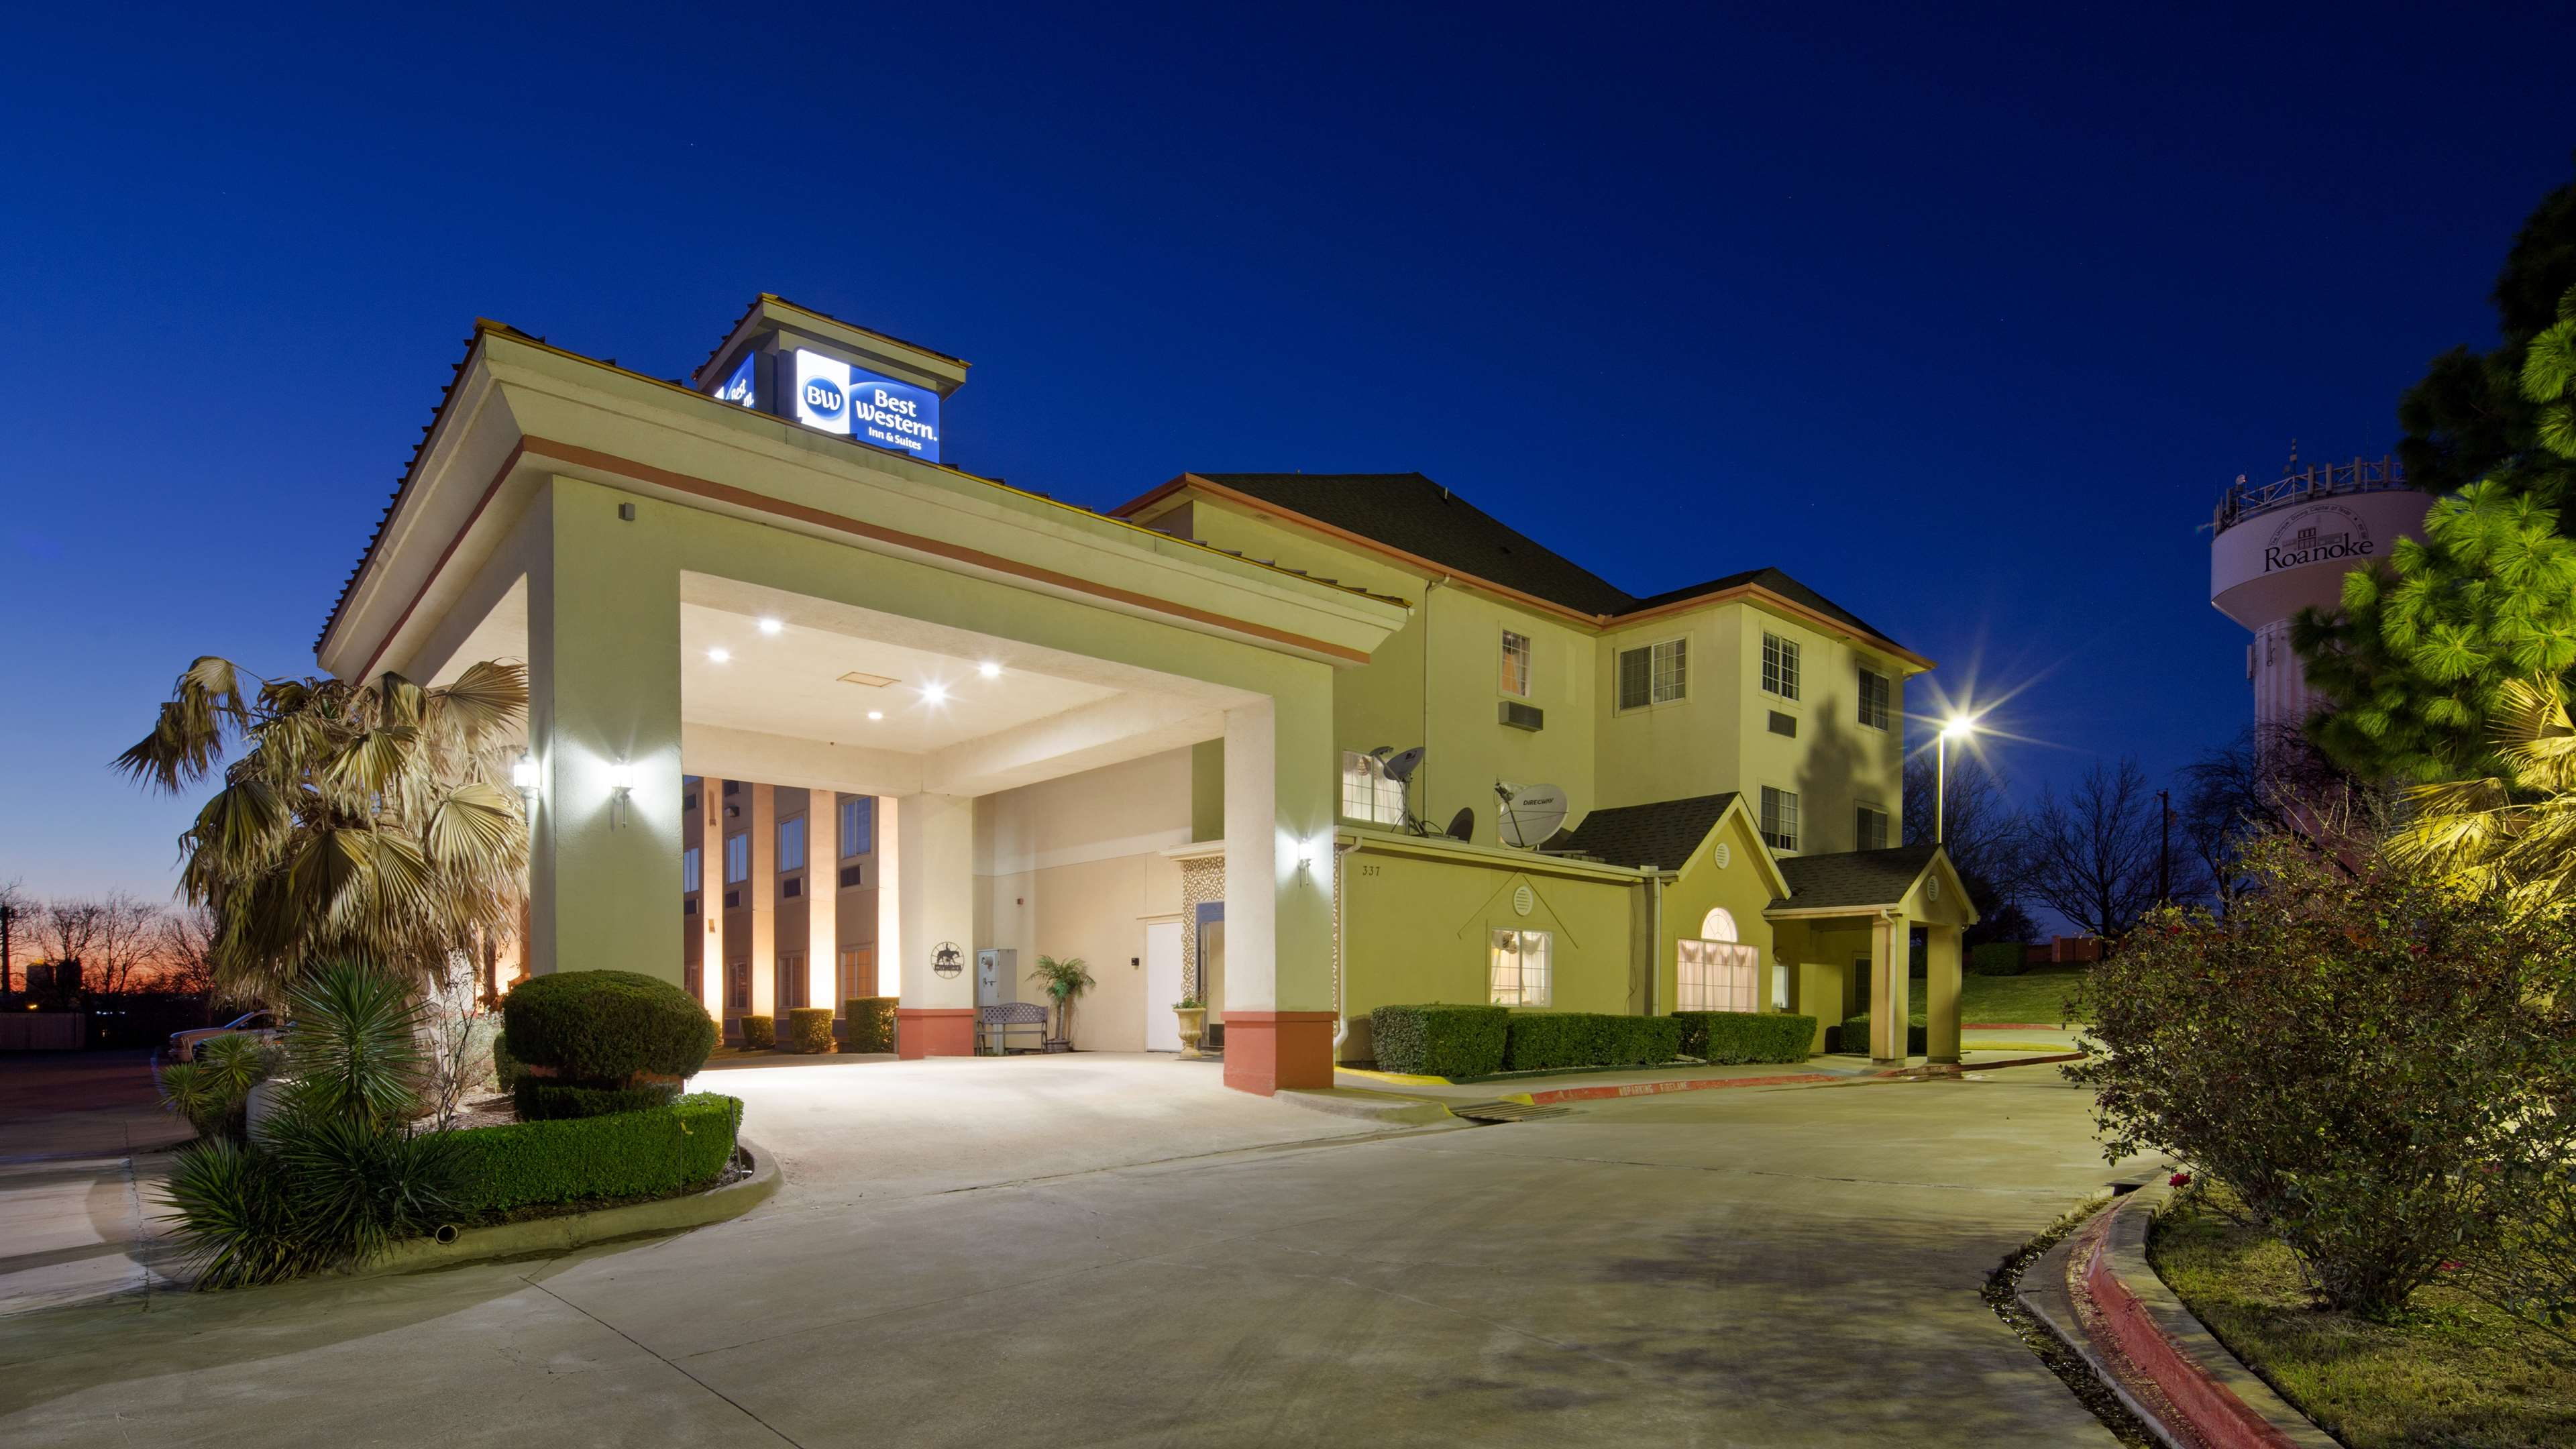 Best Western Roanoke Inn Suites 337 Dorman Rd Roanoke